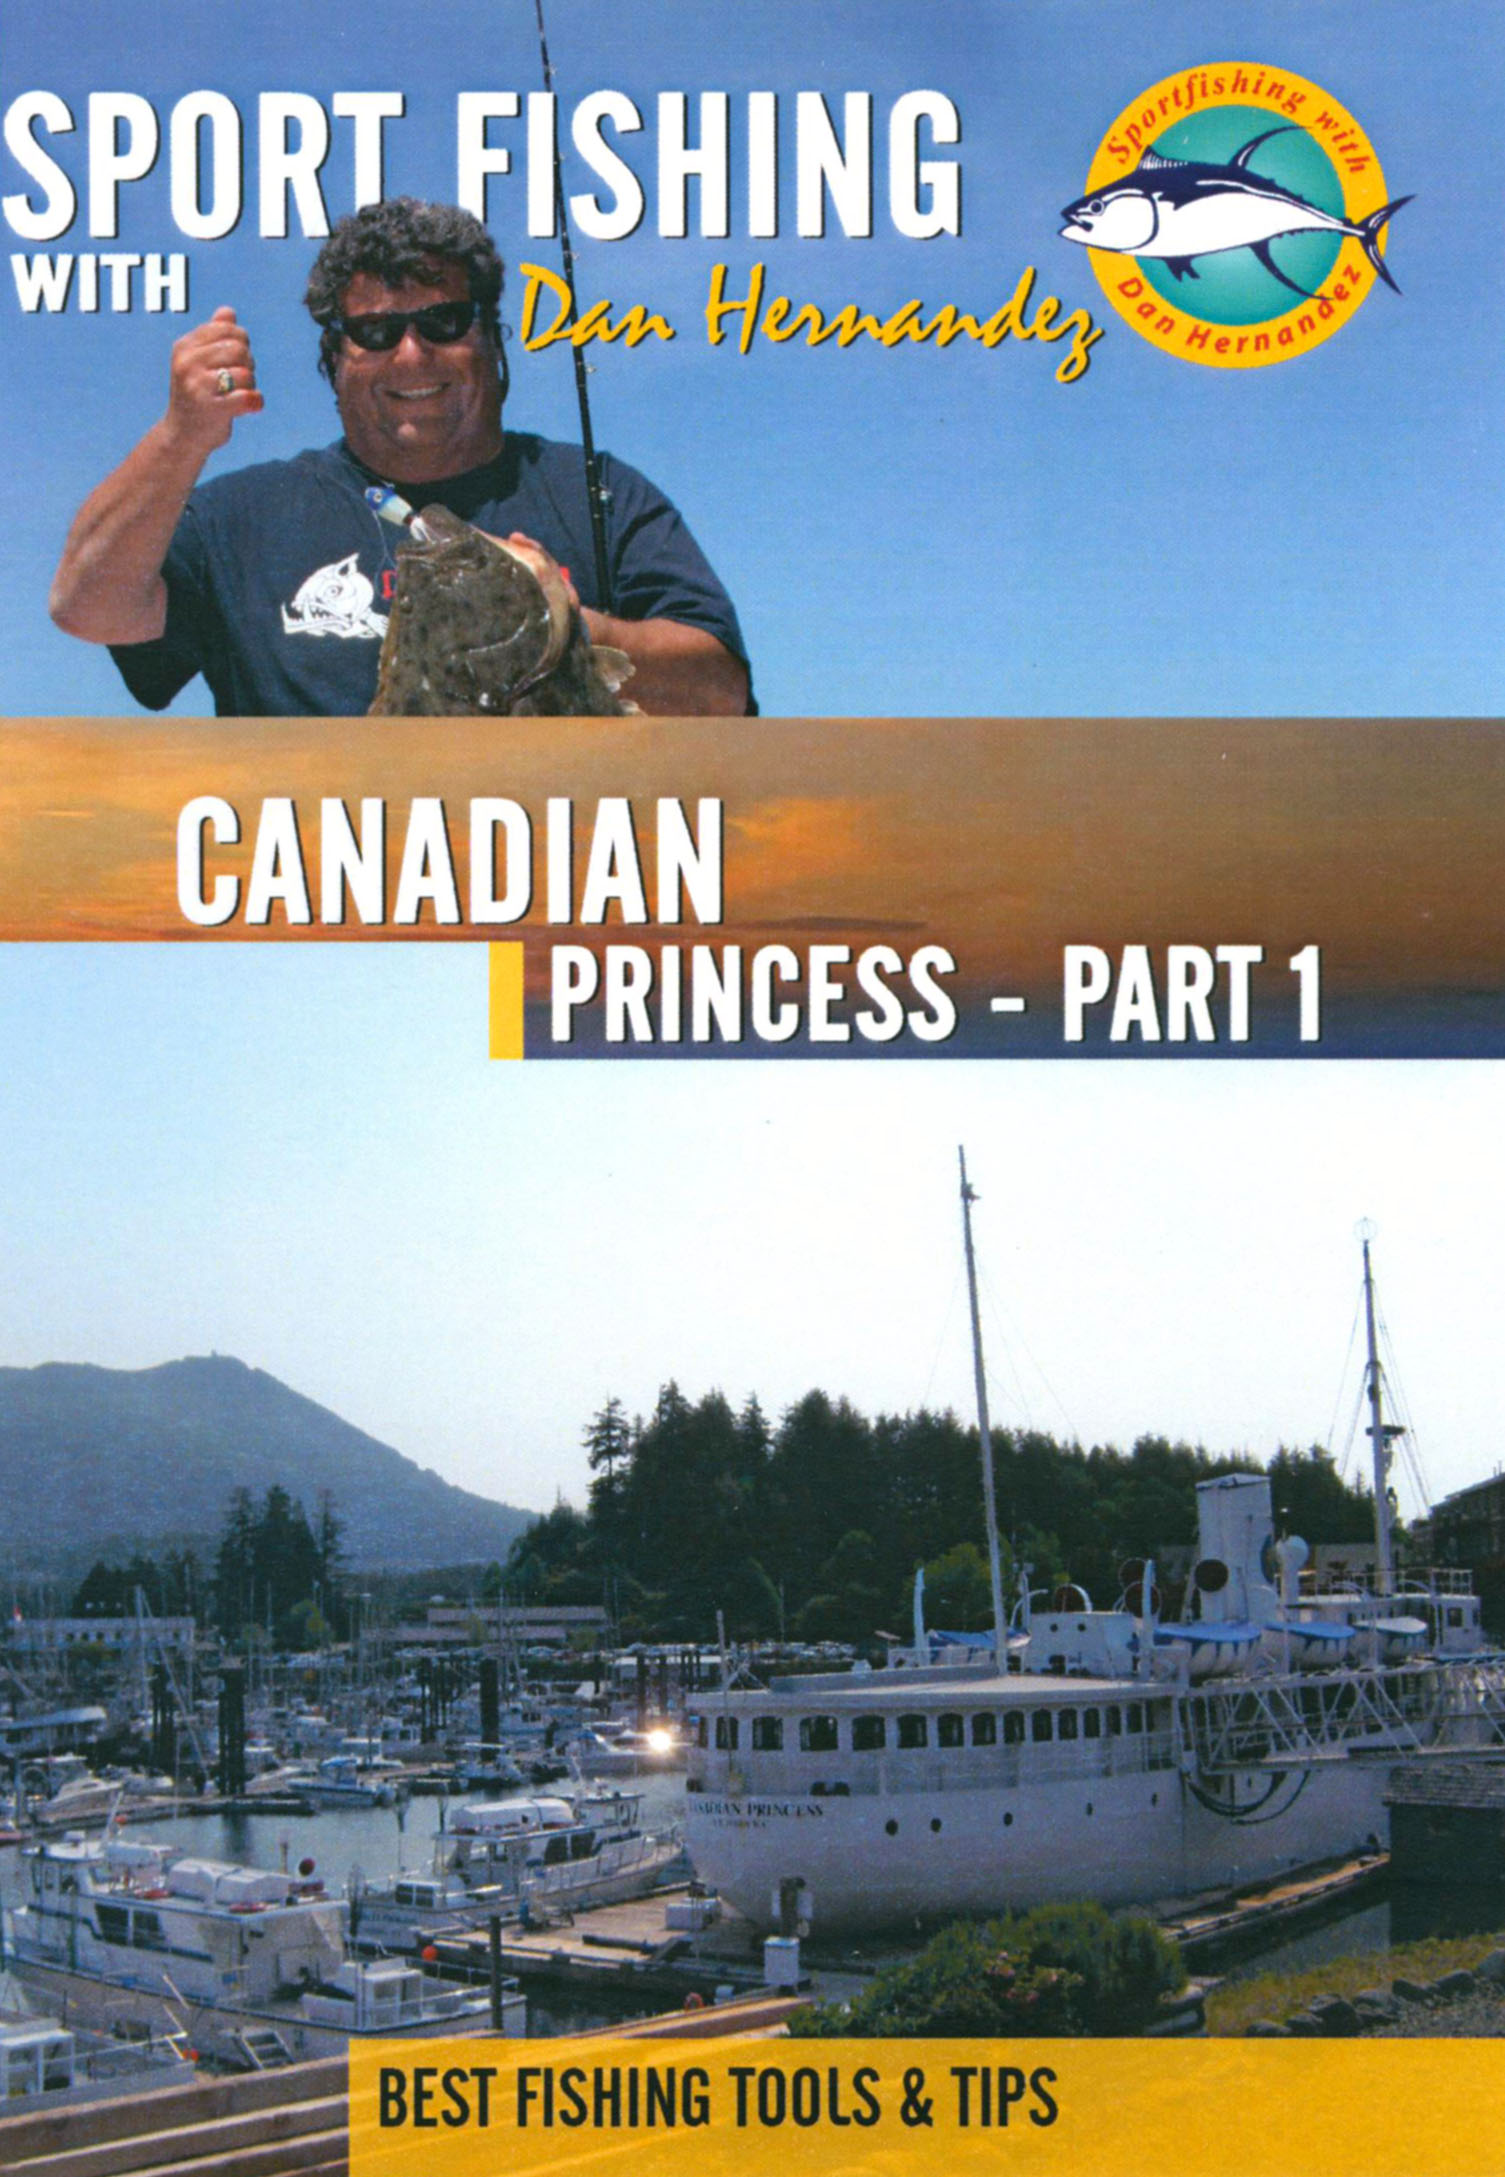 Sport Fishing With Dan Hernandez: Canadian Princess, Part 1